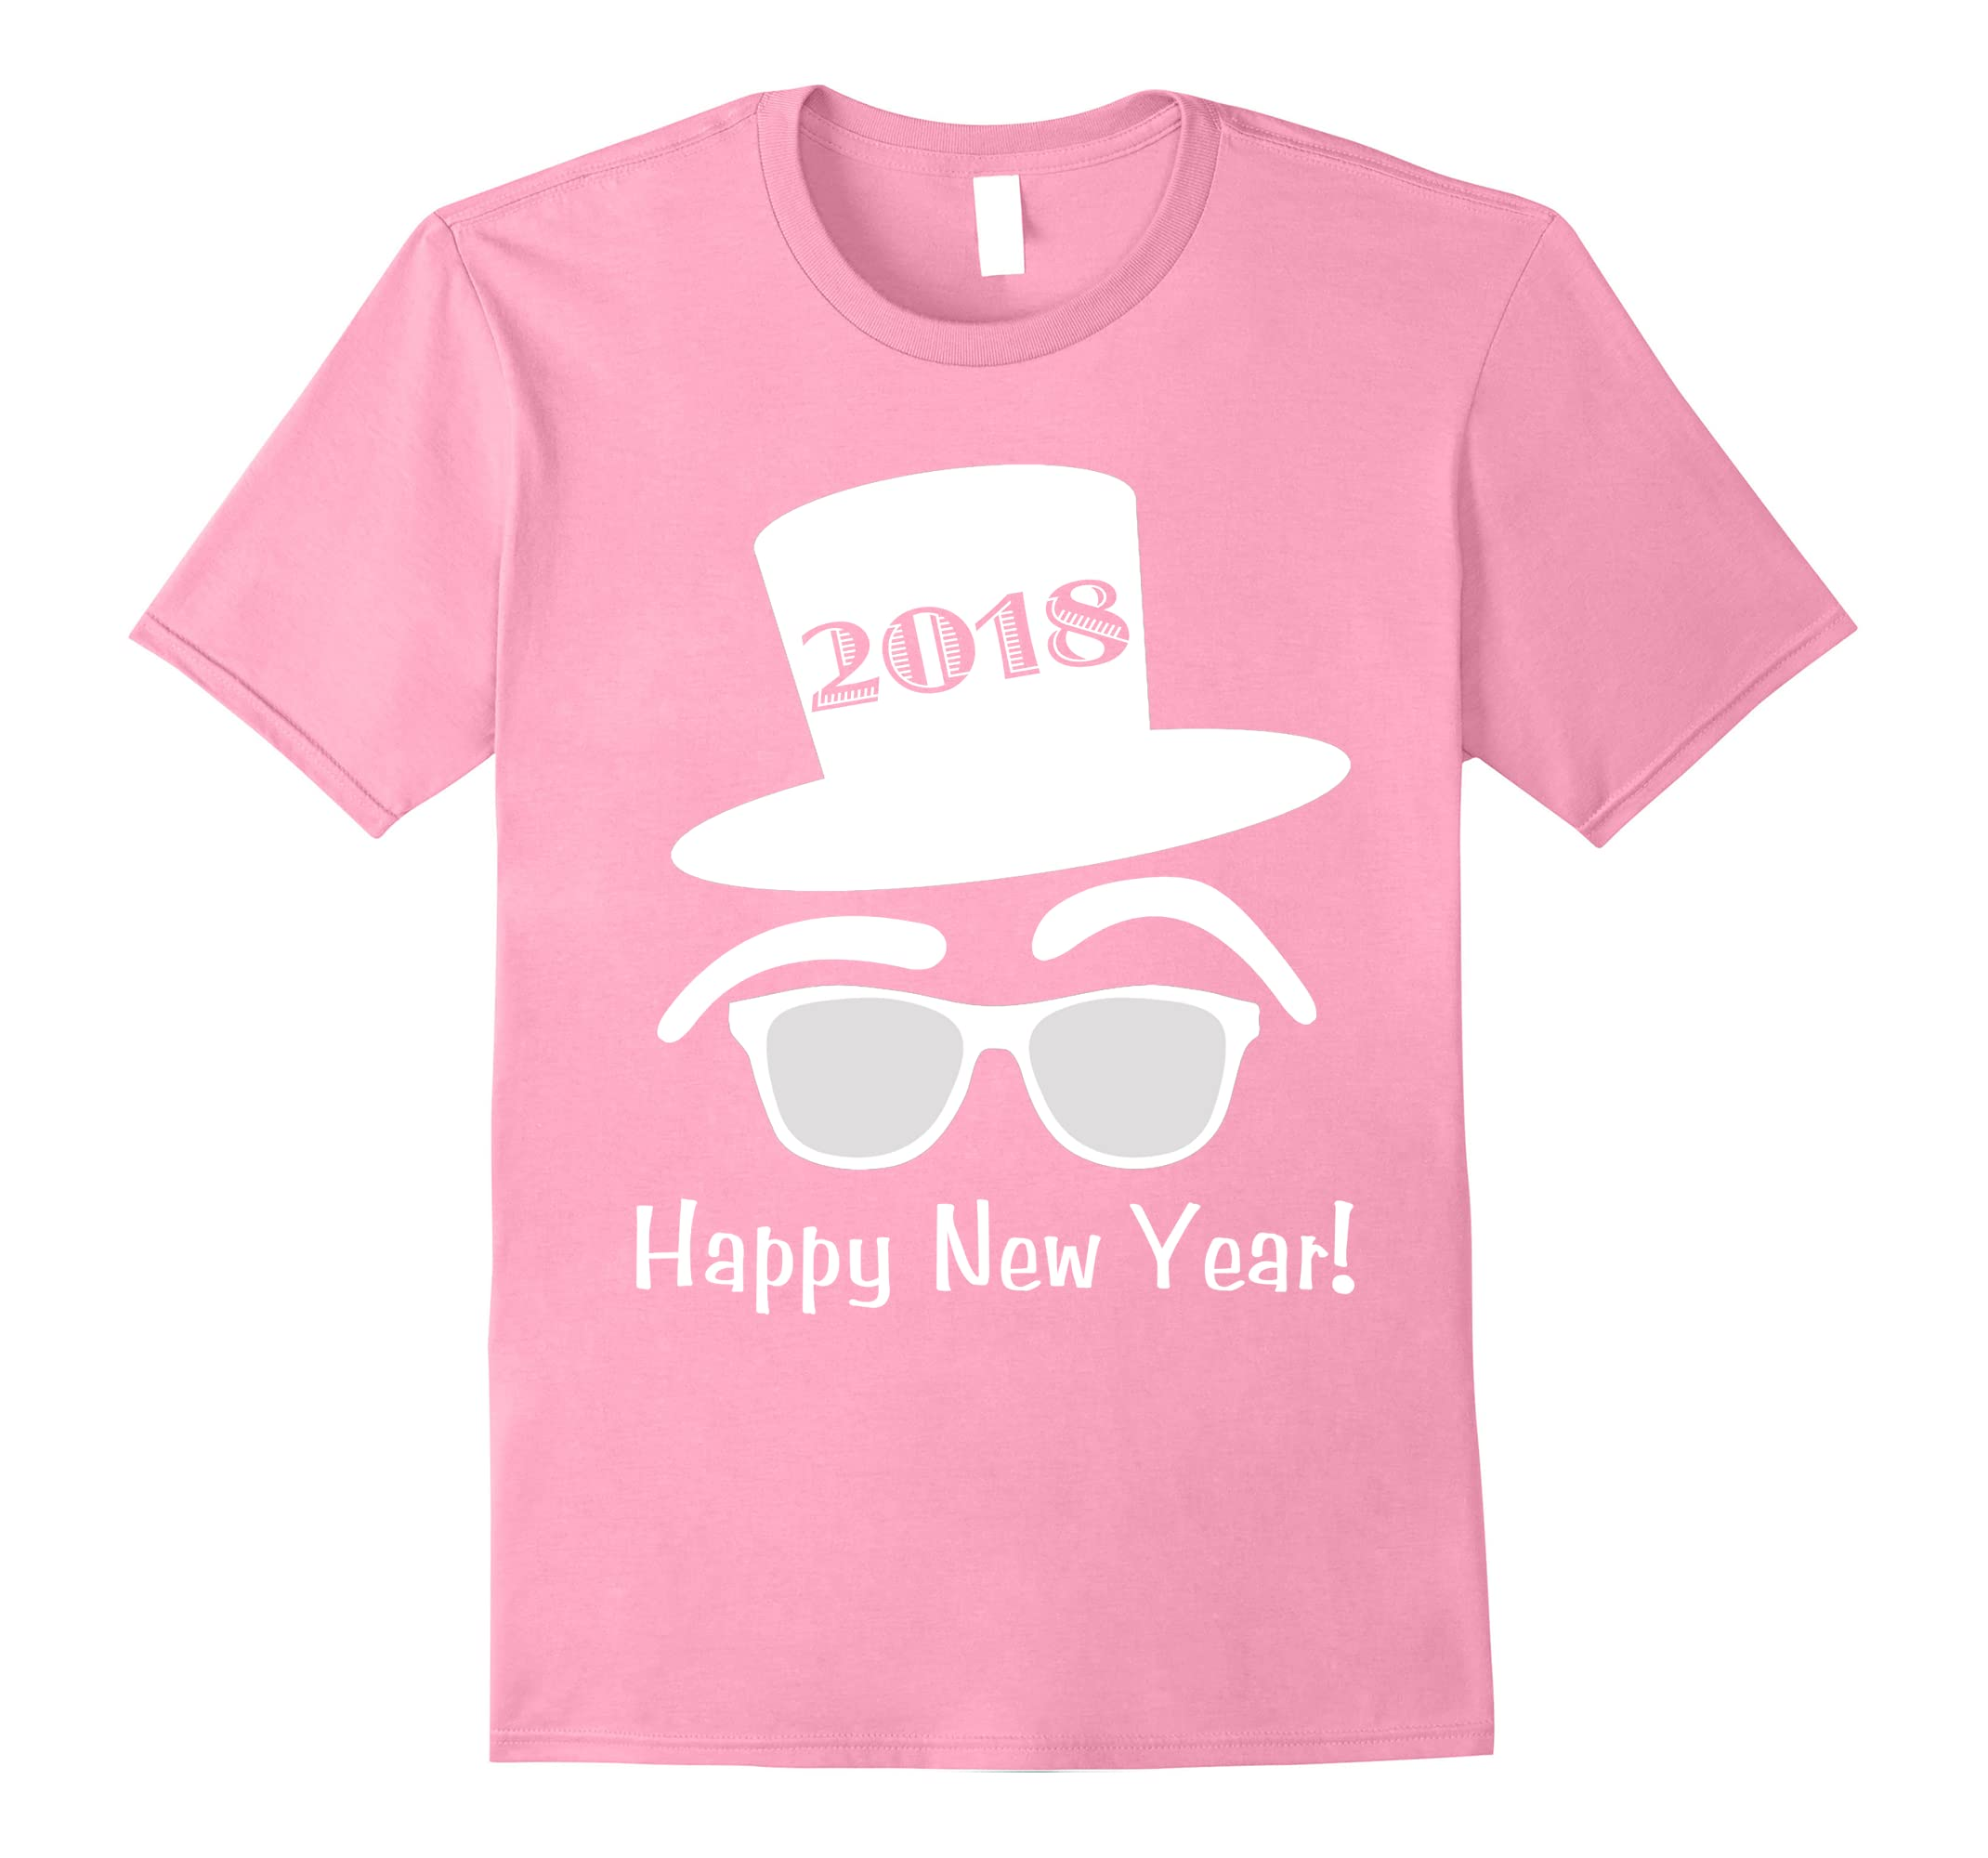 4185d11e49 2018 Hipster Top Hat Sunglasses Happy New Years Eve T-shirt-RT ...